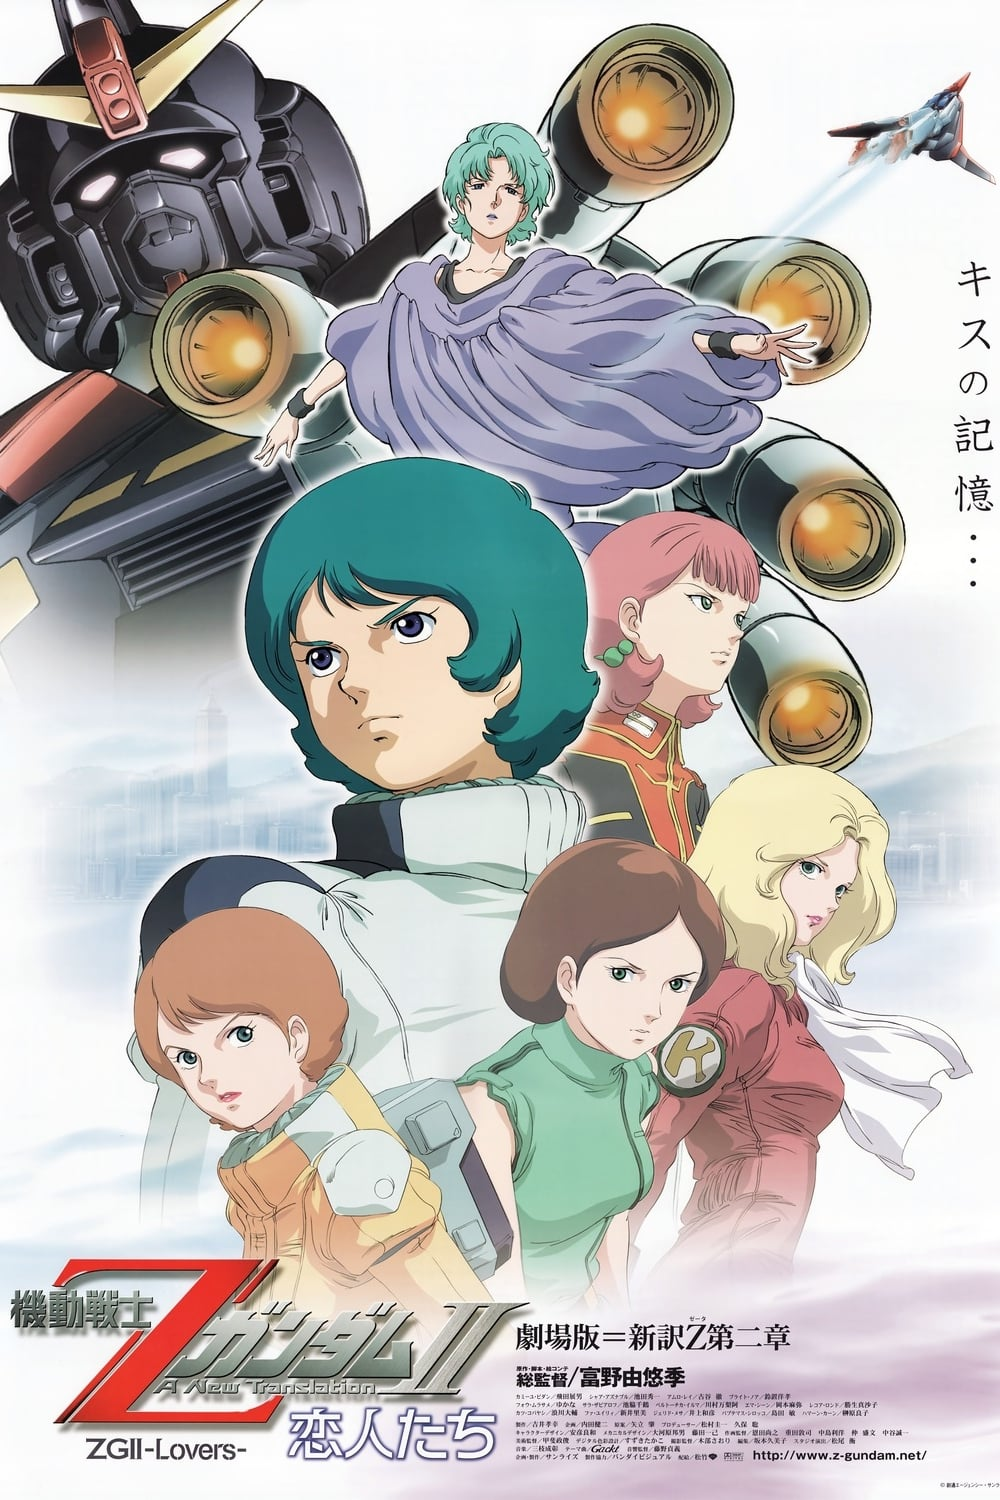 Mobile Suit Zeta Gundam A New Translation II: Lovers (2005)